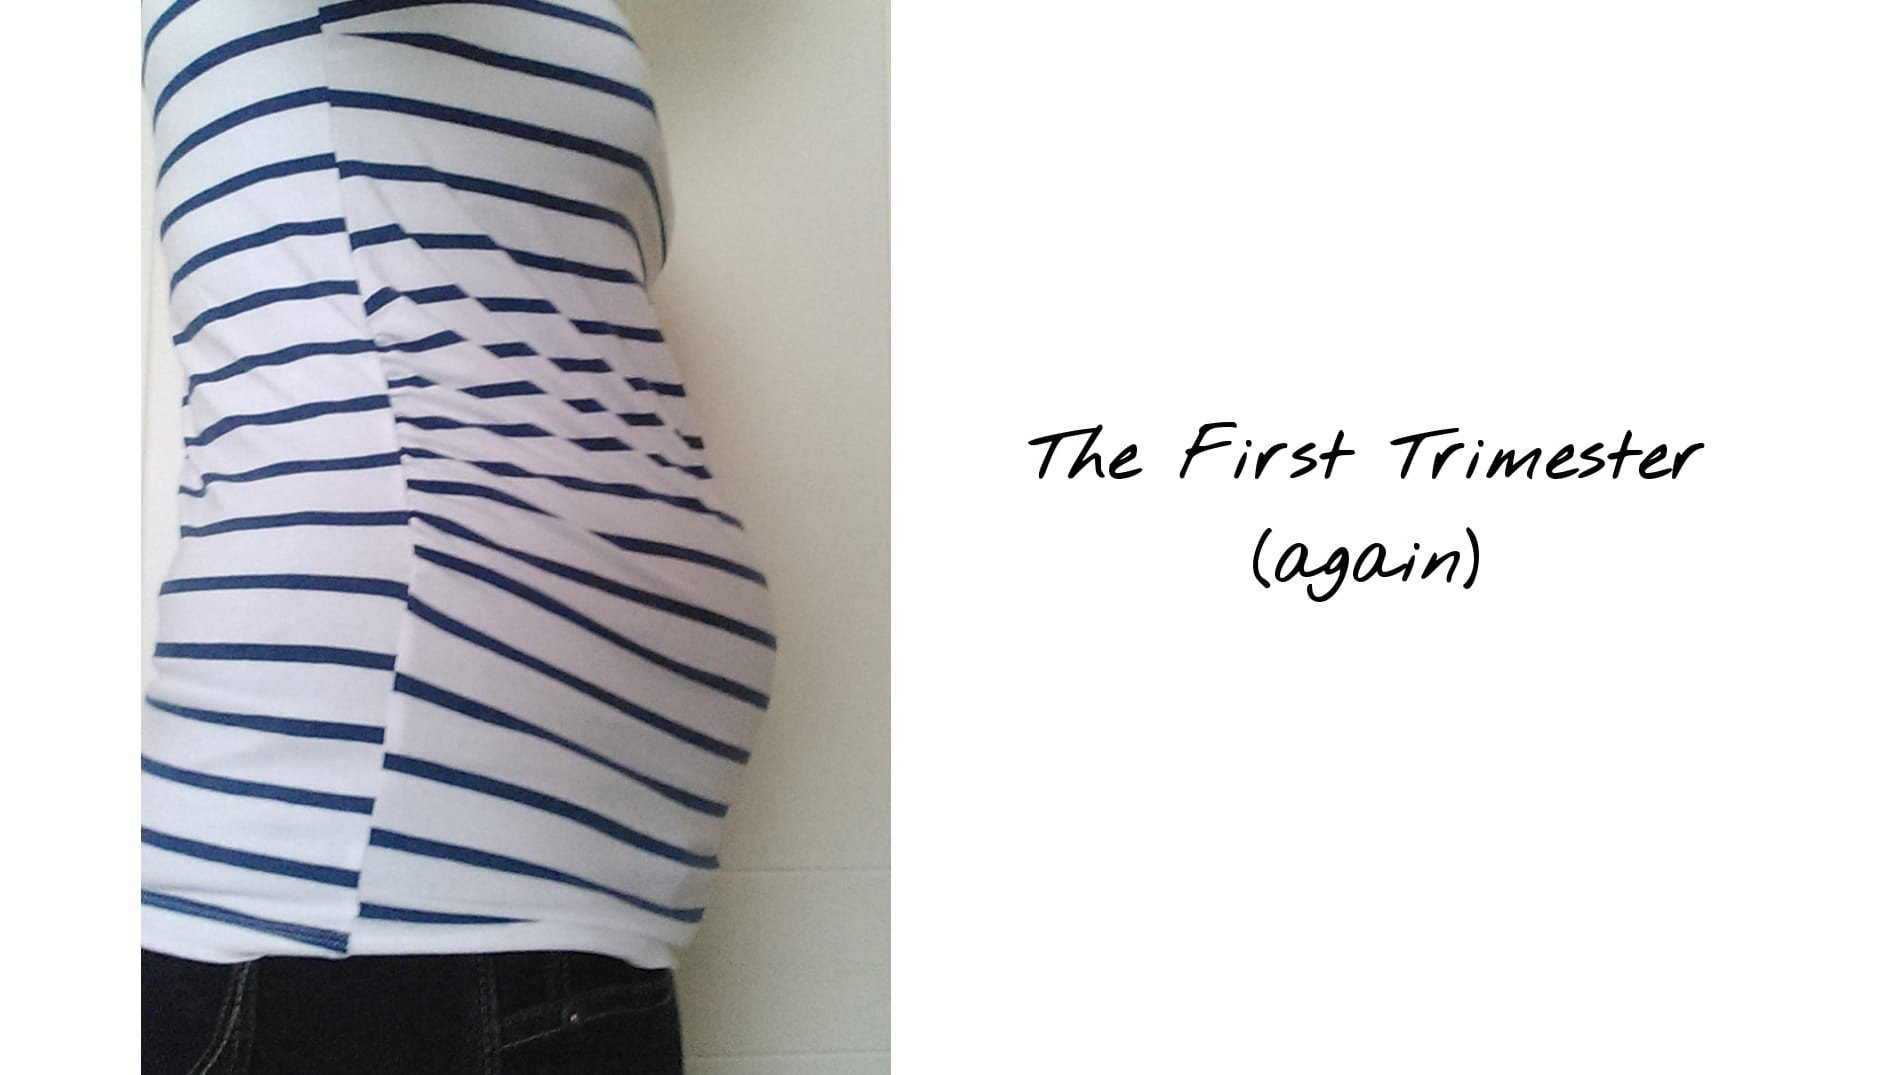 The First Trimester (again)